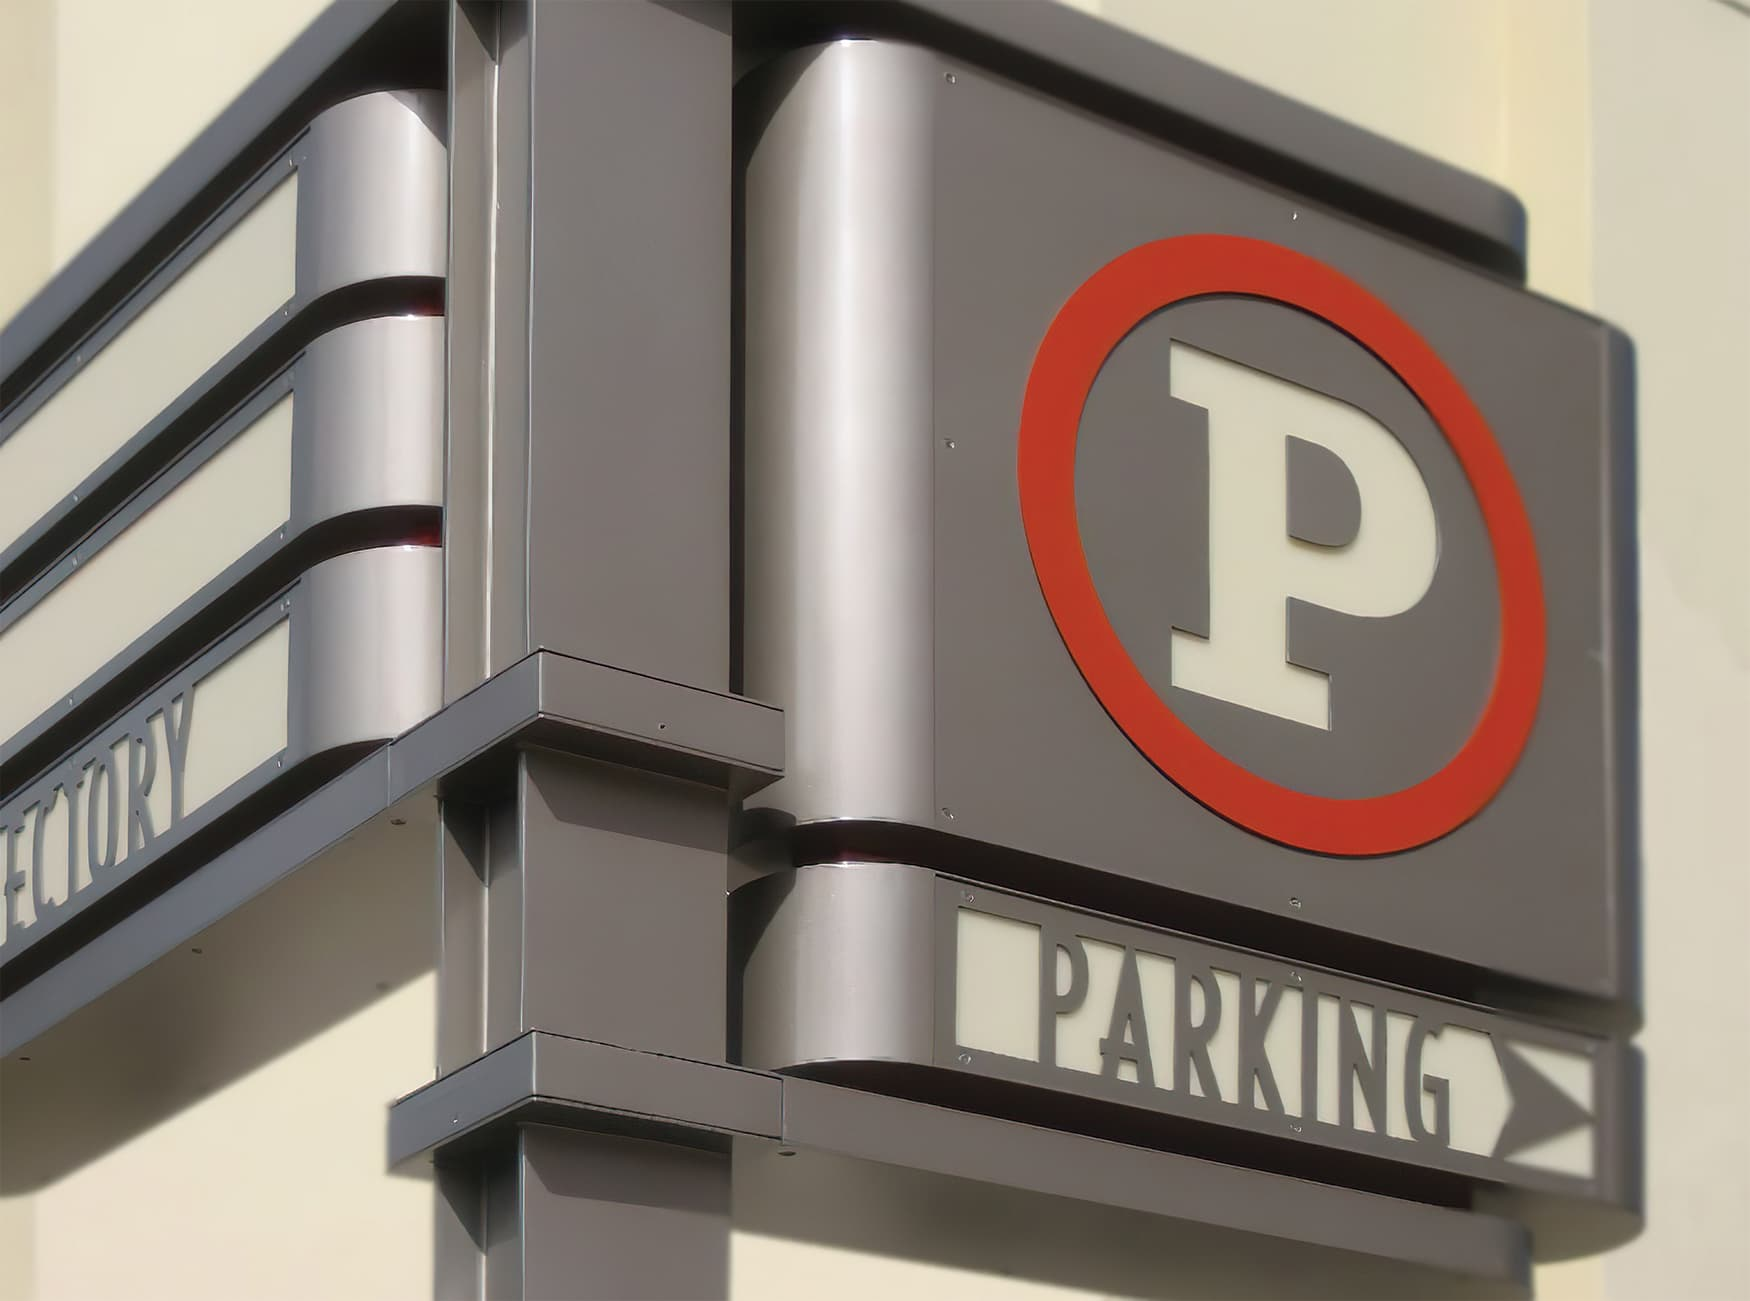 Northfield Stapleton Mall, an open-air retail center near Denver, Colorado. Parking Signage. Wayfinding Signage.